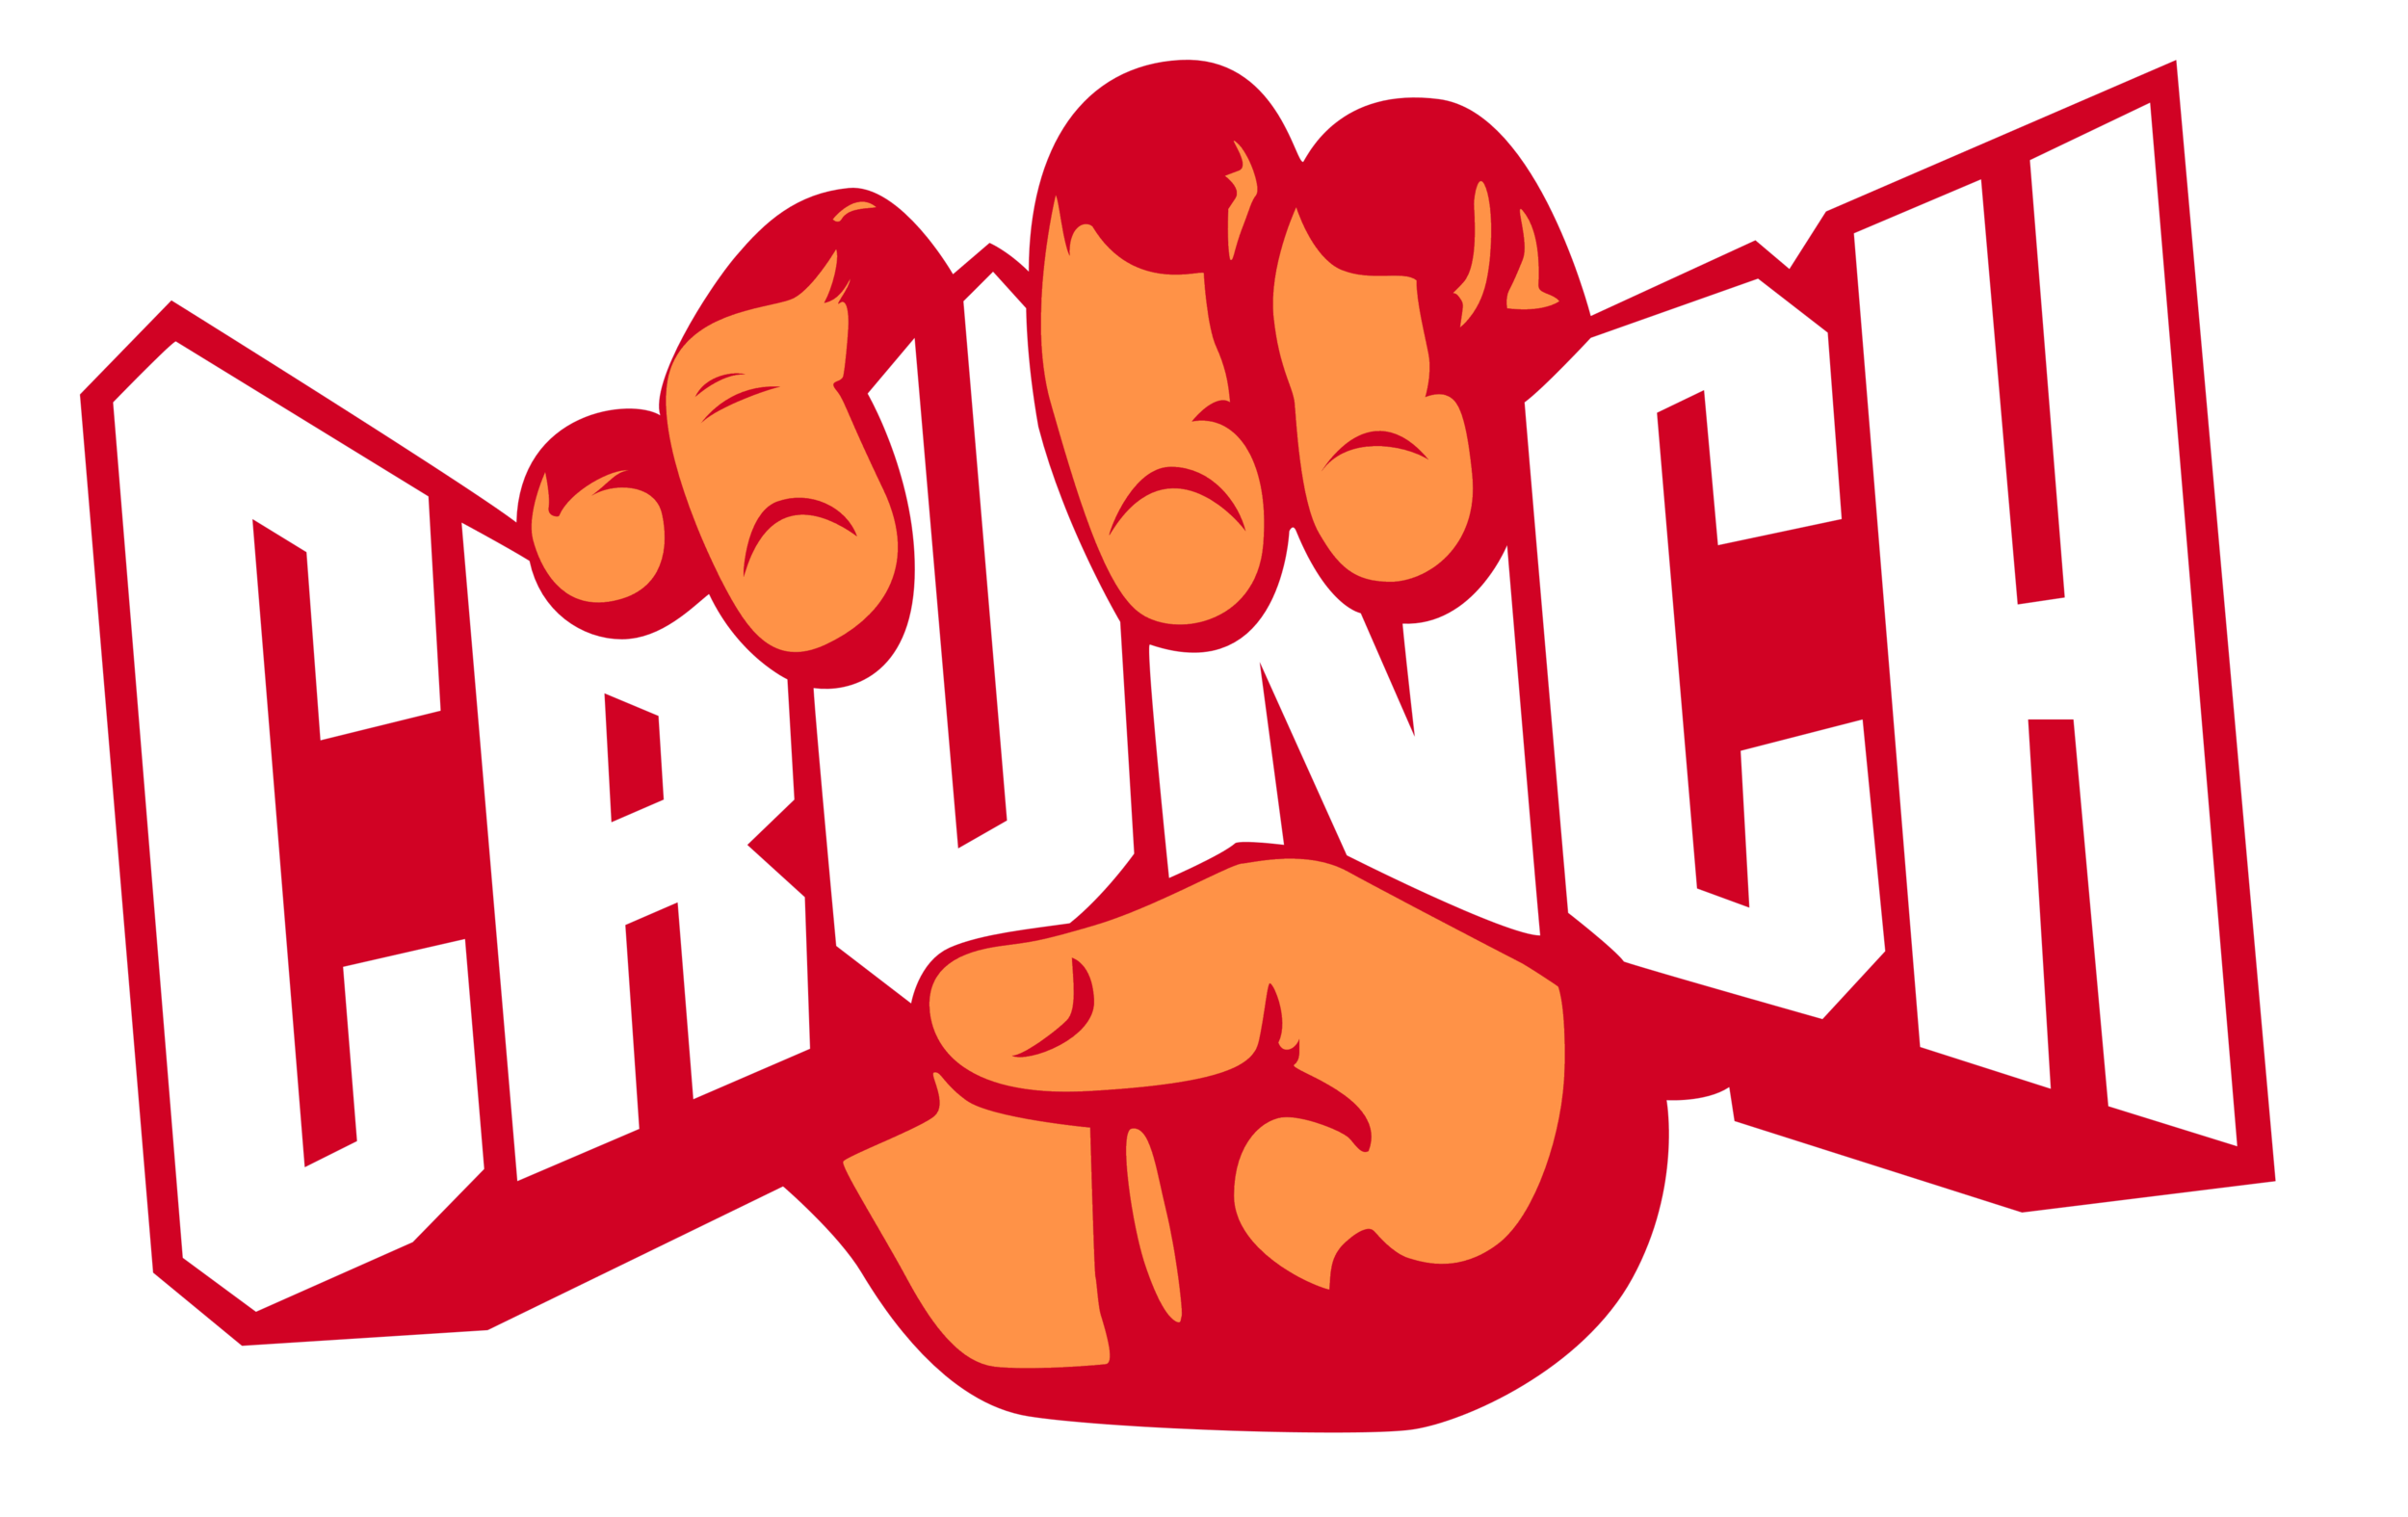 Crunch_Gym_Fitness_logo.png